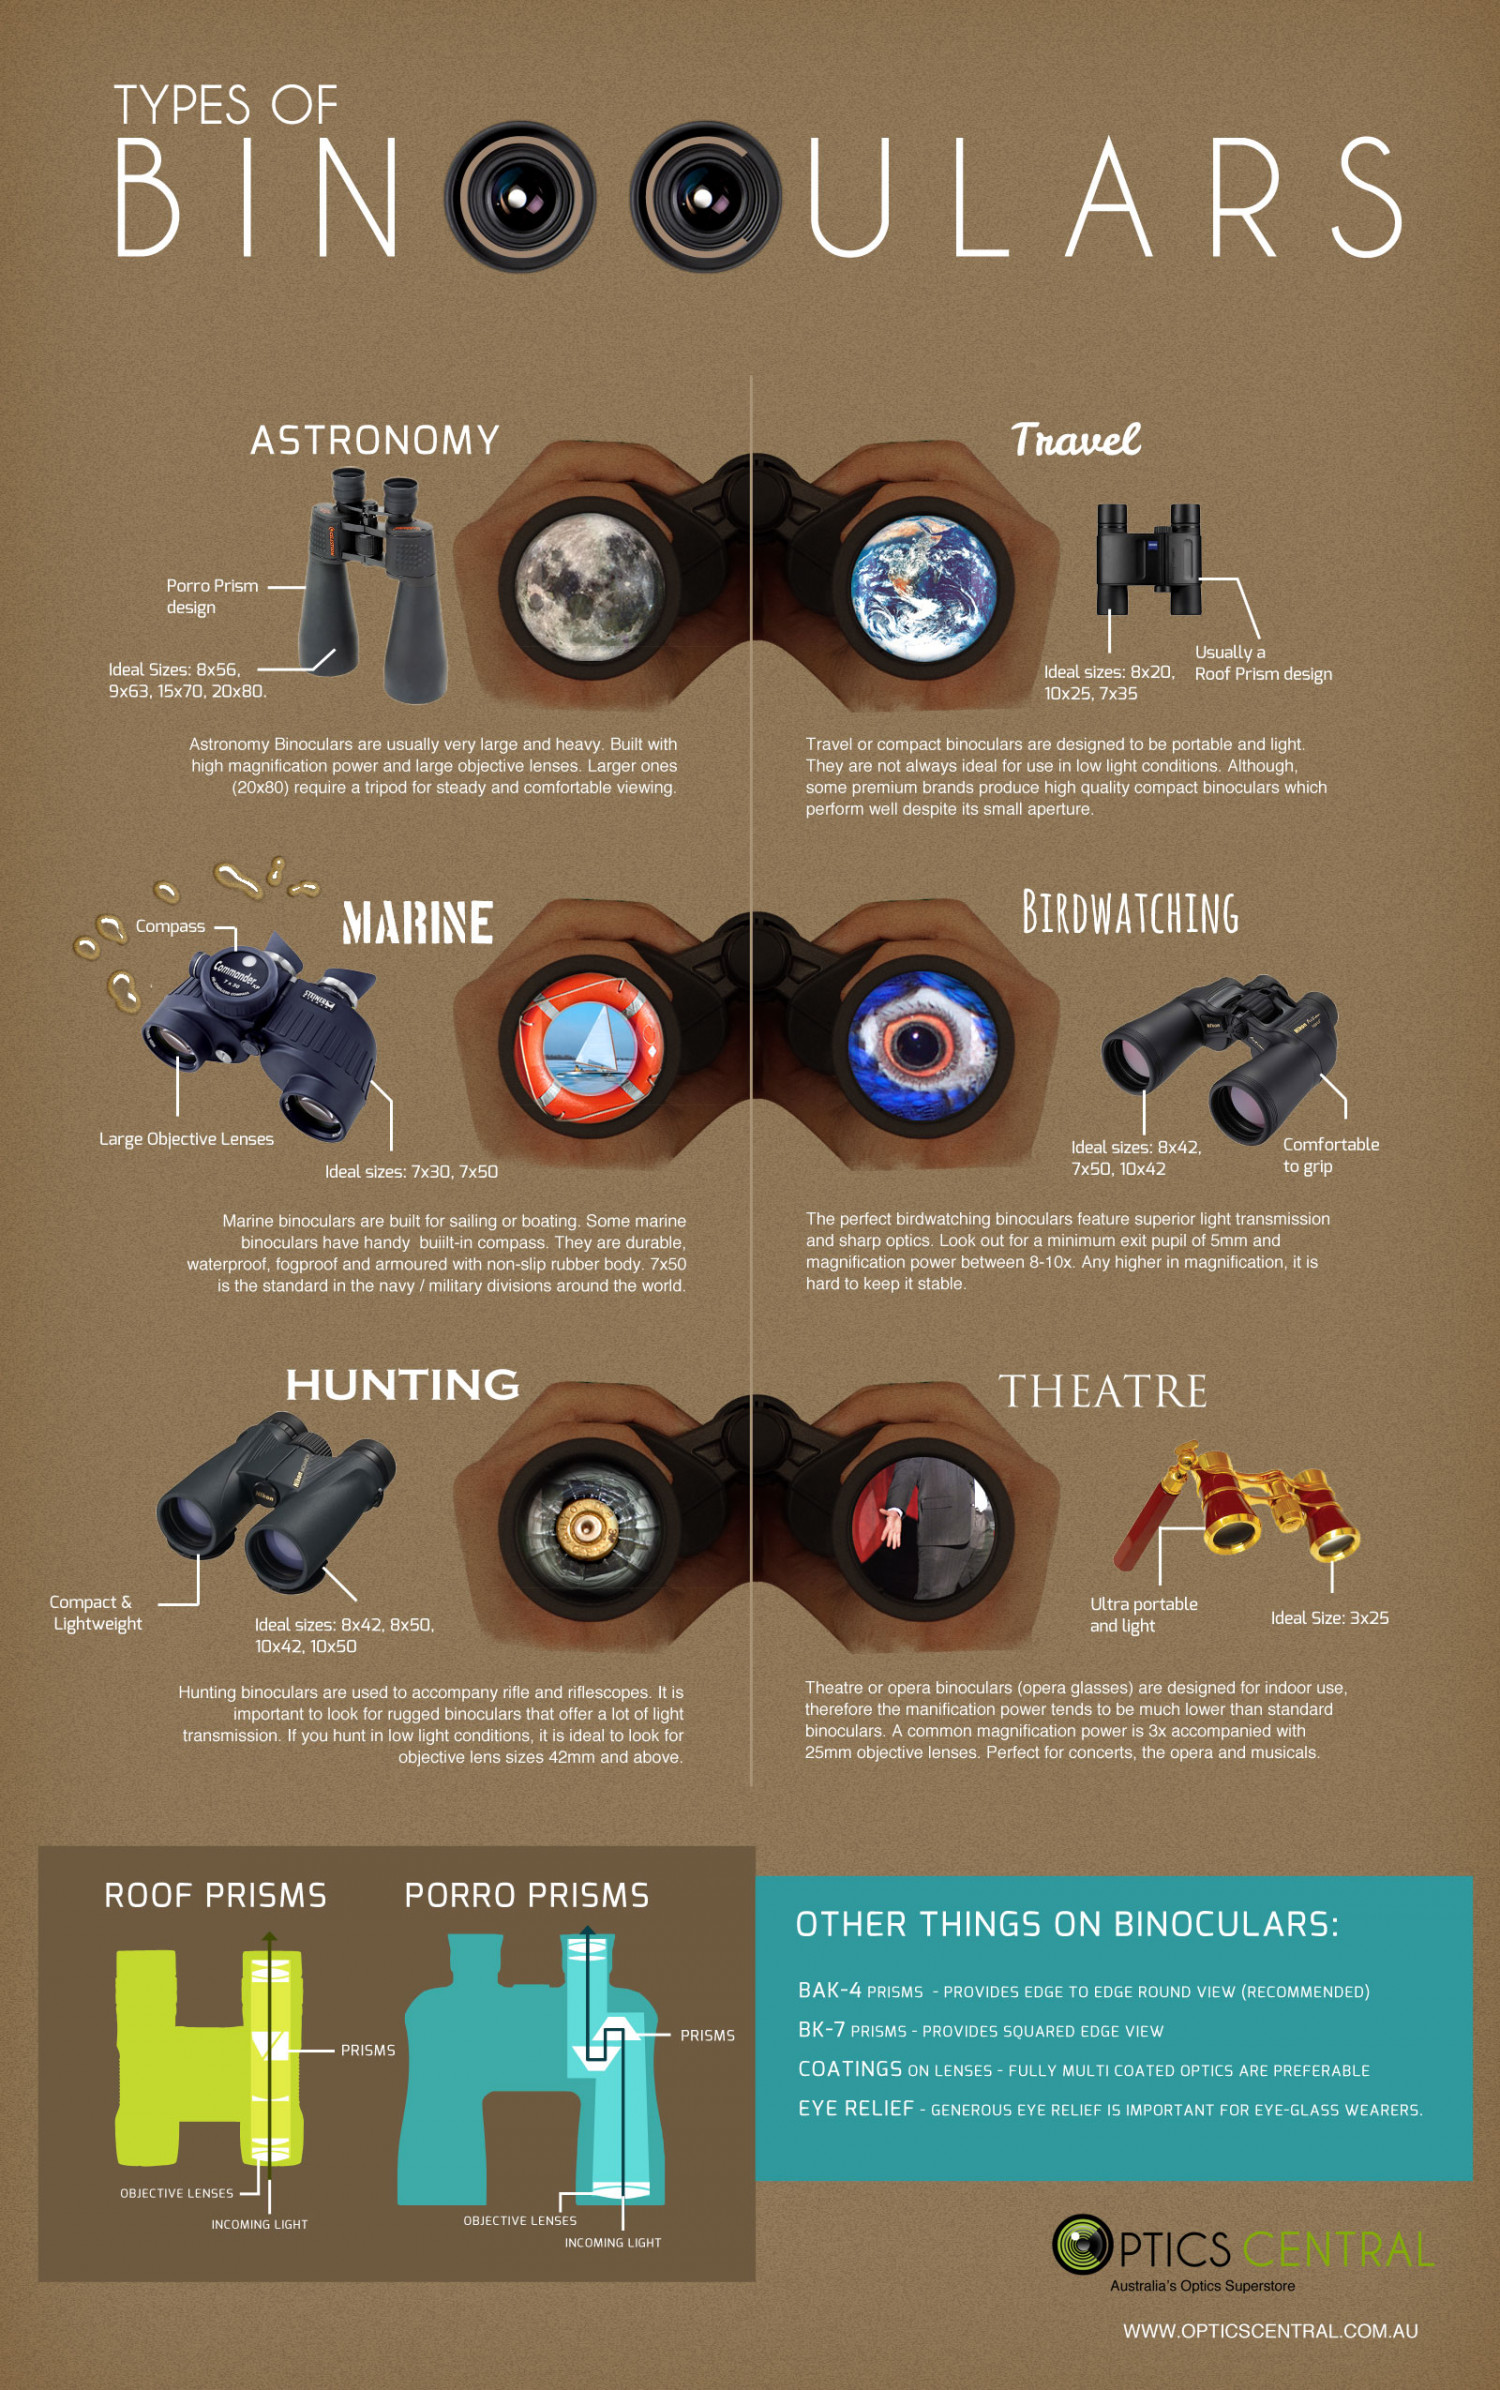 Types of Binoculars Infographic